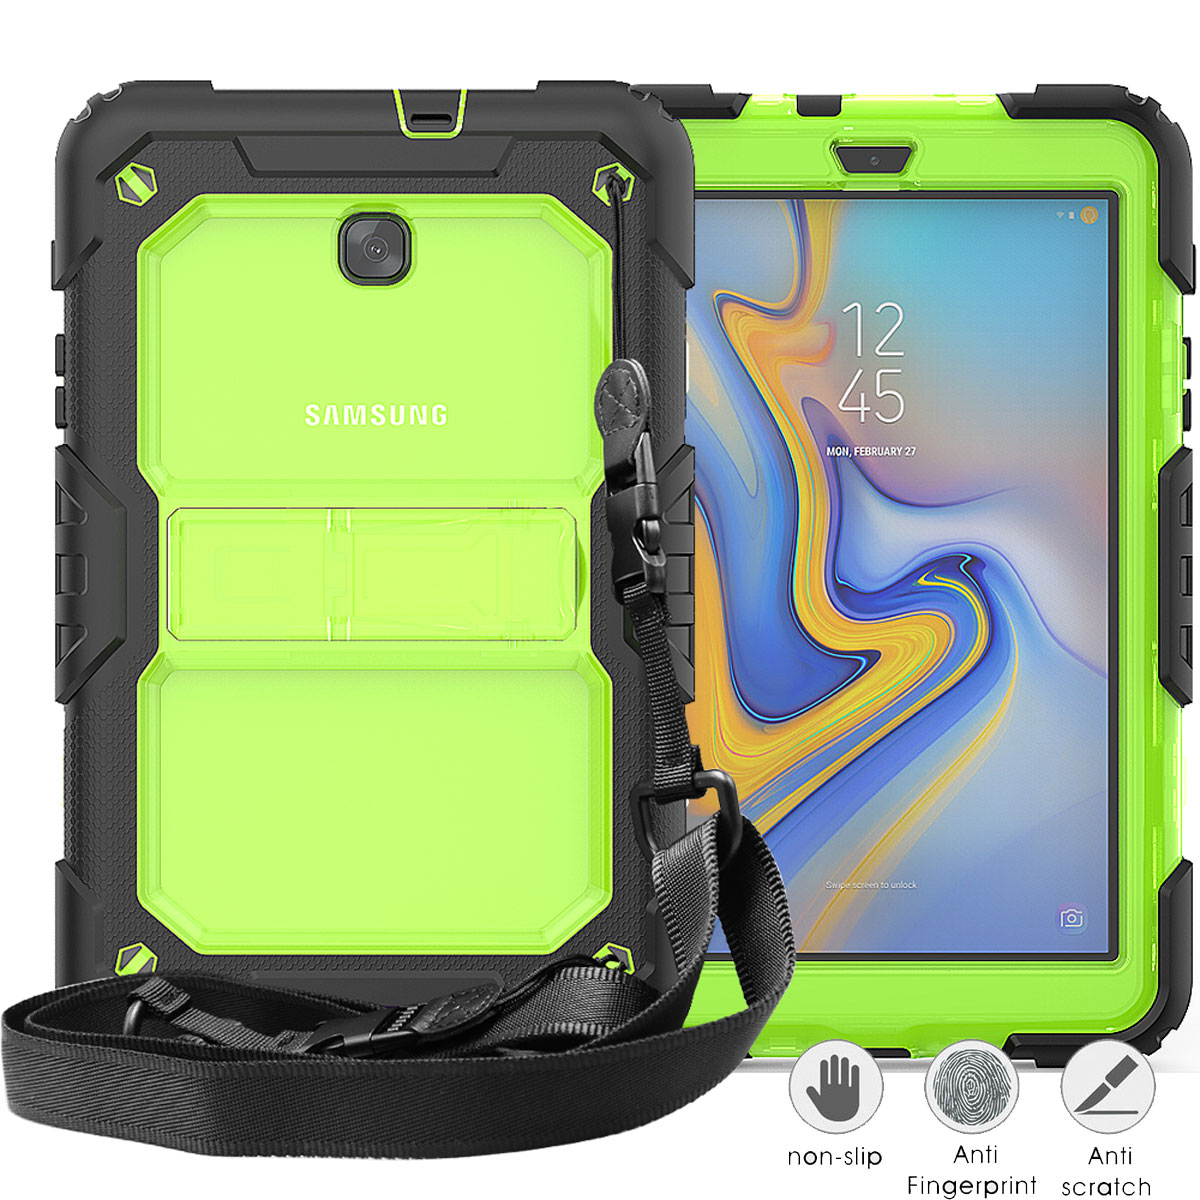 Cistor Shockproof Anti-Fall Case for Huawei P20 Lite,Anti-scratch Protective Bumper Cover for Huawei P20 Lite,Mint Green Pure Colour Stylish Ultra Thin Hard PC Soft TPU Hybrid Dual-Layer Case